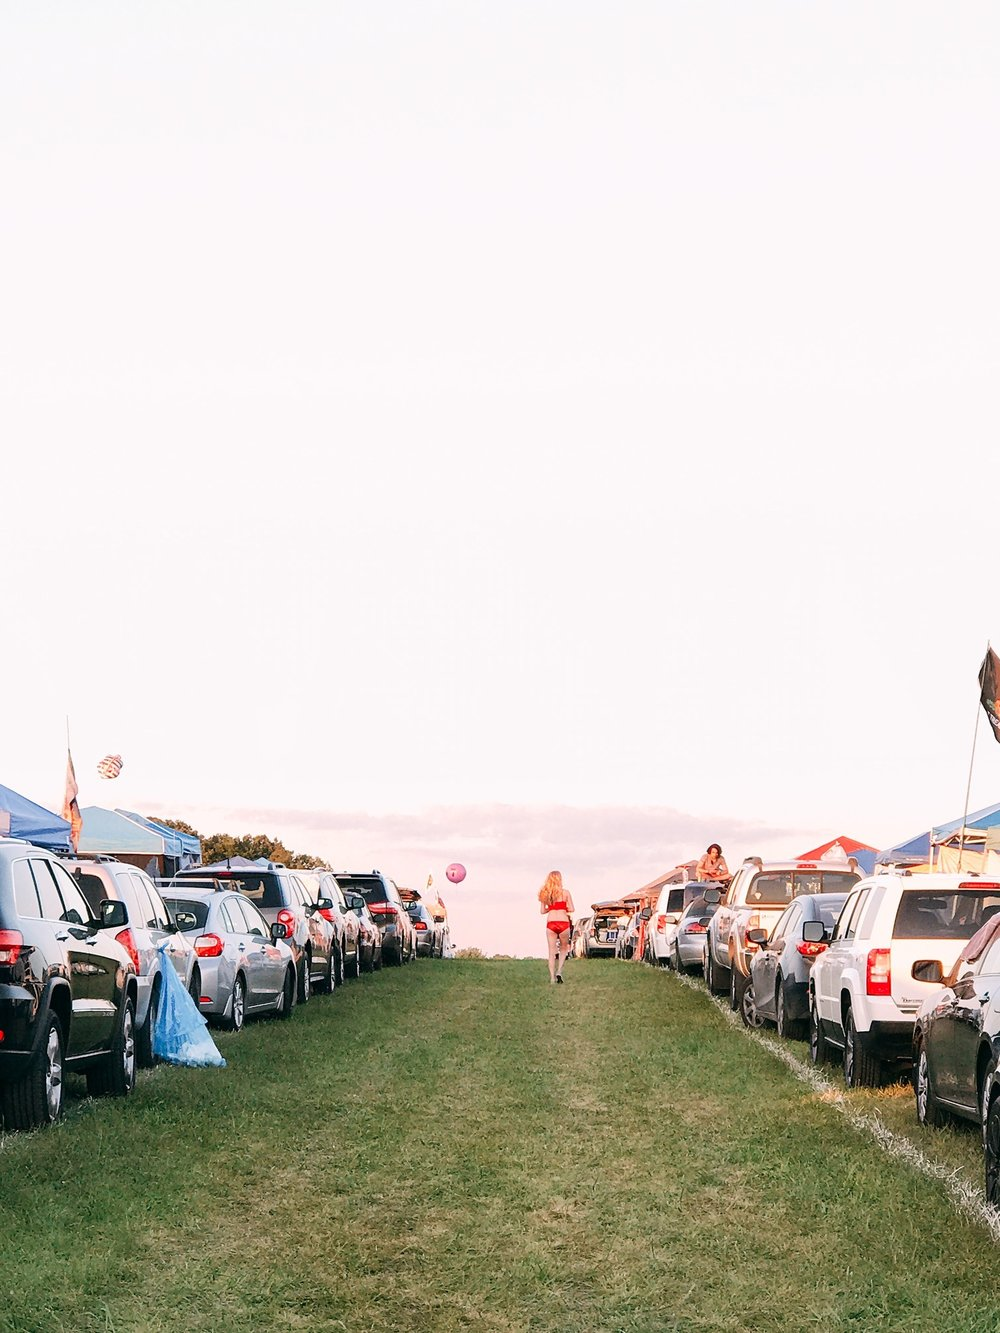 Camping at Bonnaroo